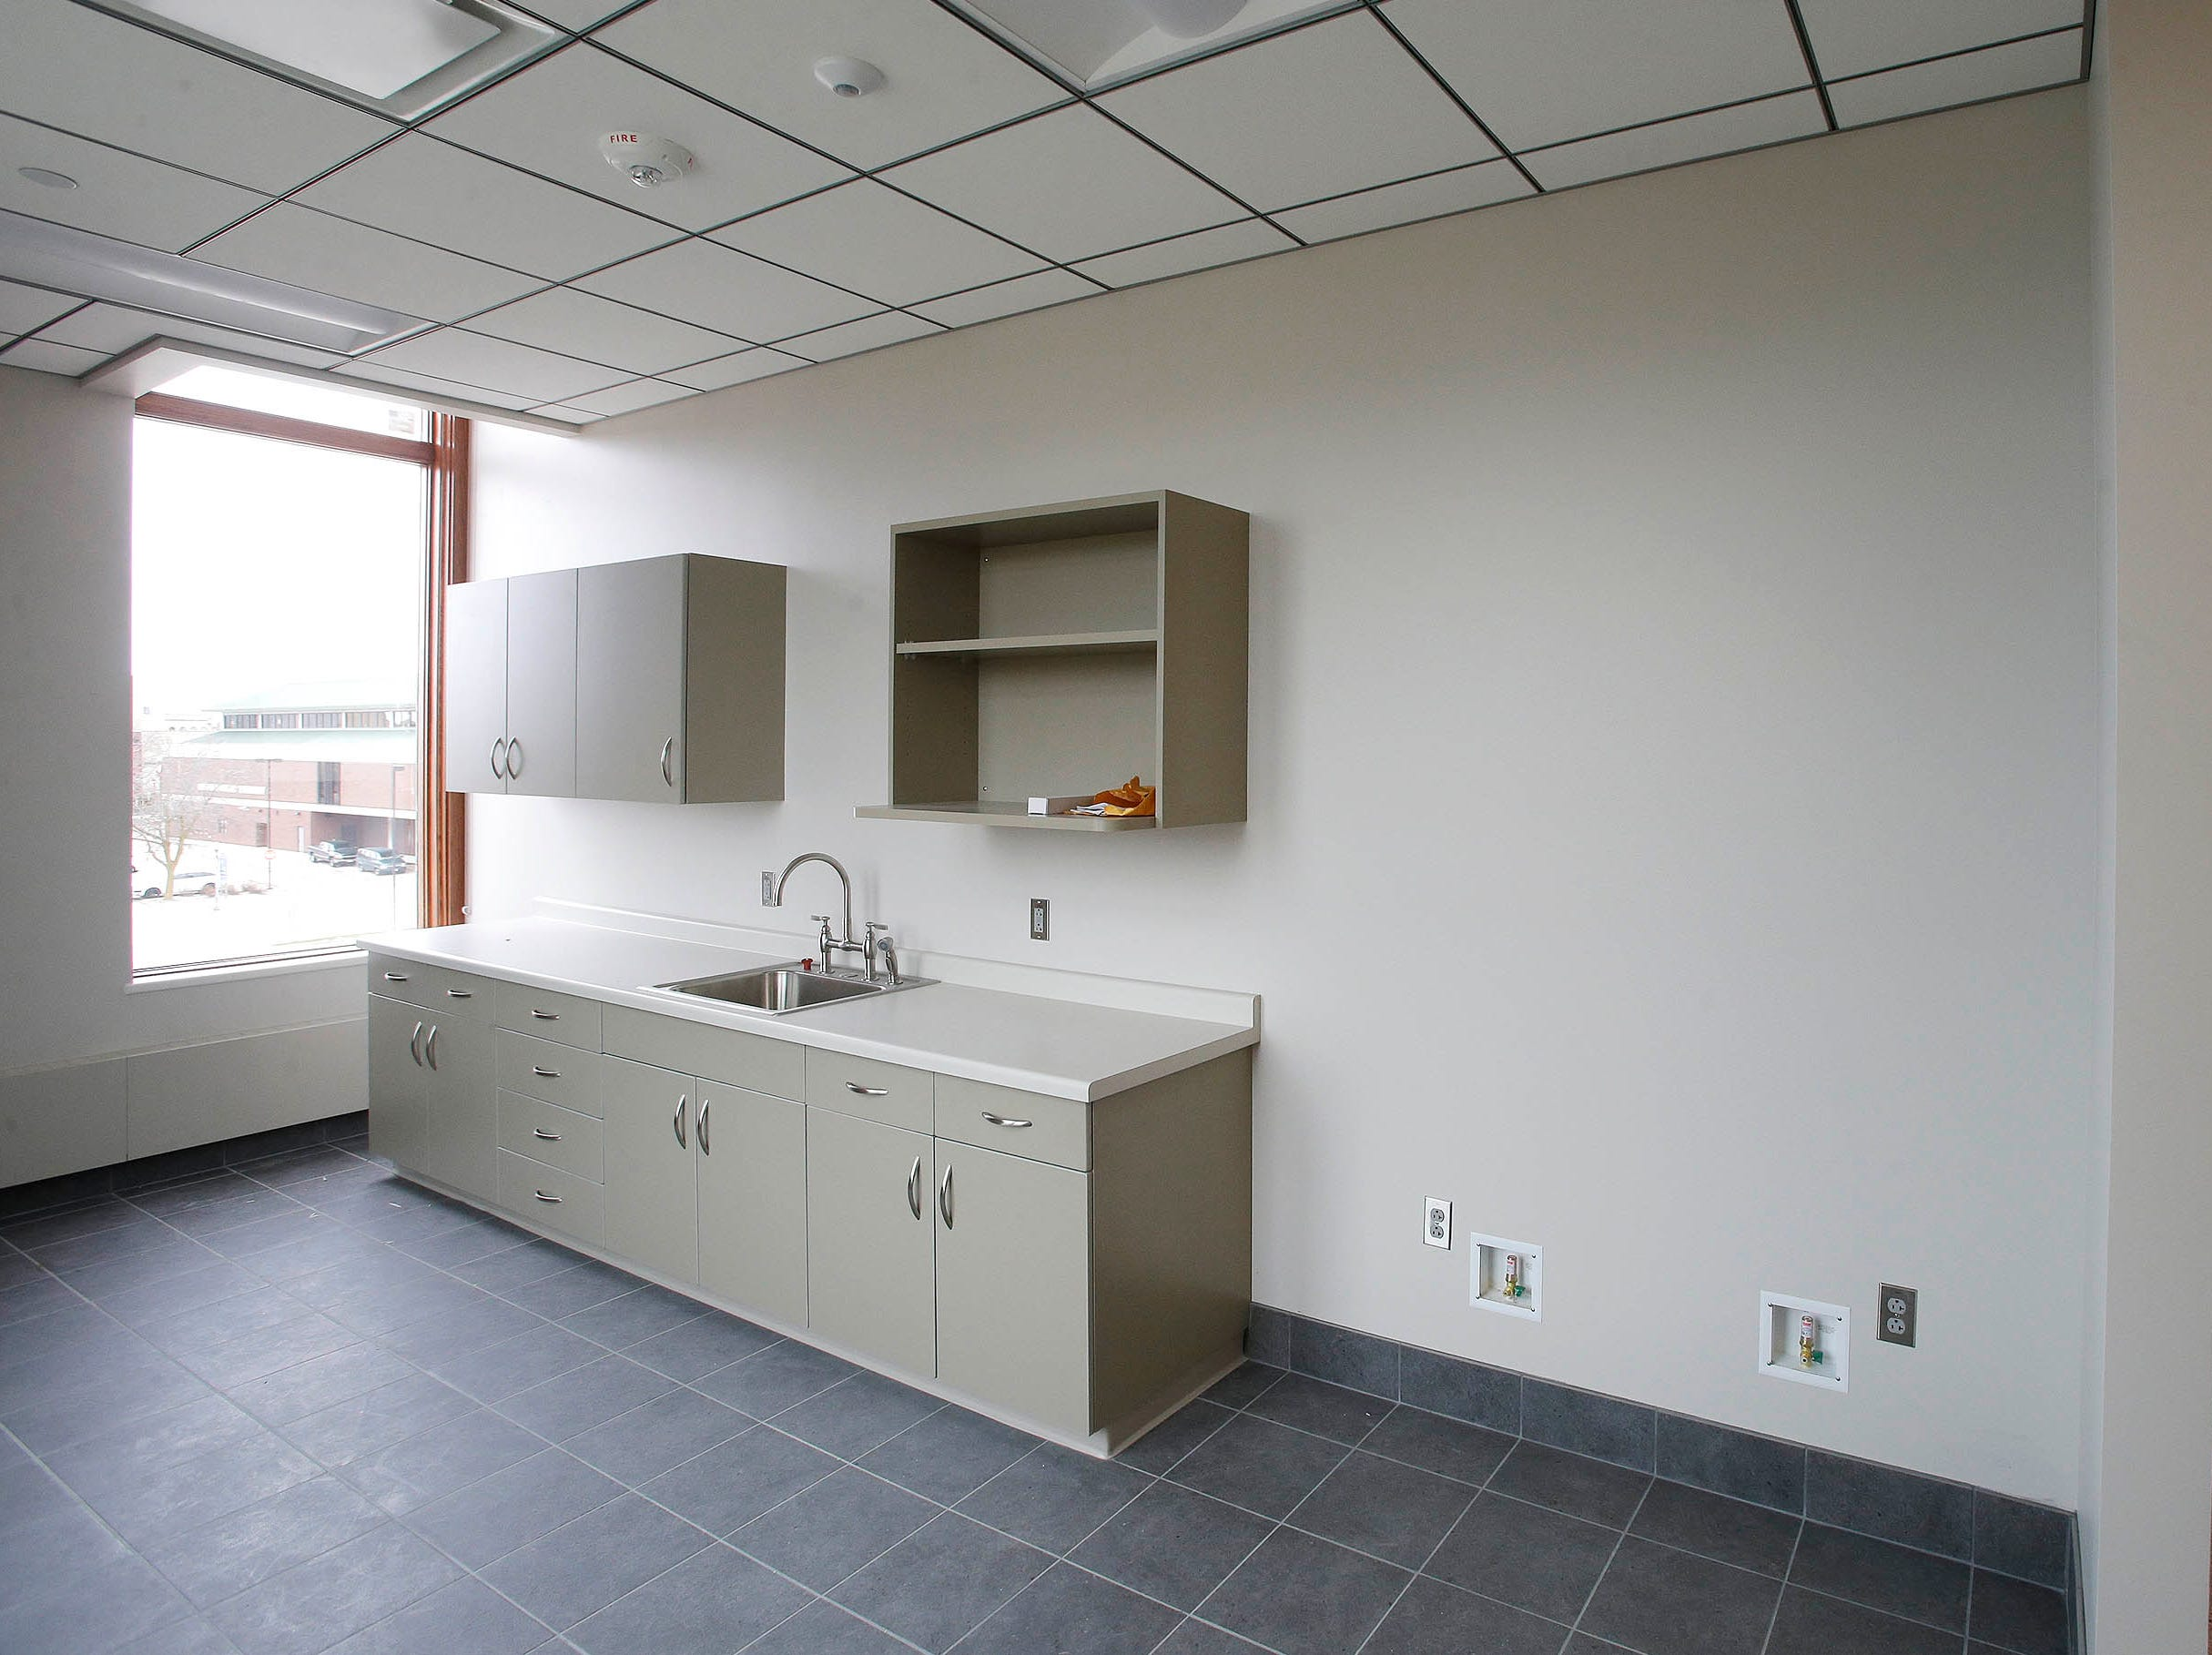 A view of the employee lounge area at the newly remodeled Sheboygan City Hall as seen, Tuesday, May 7, 2019, in Sheboygan, Wis.